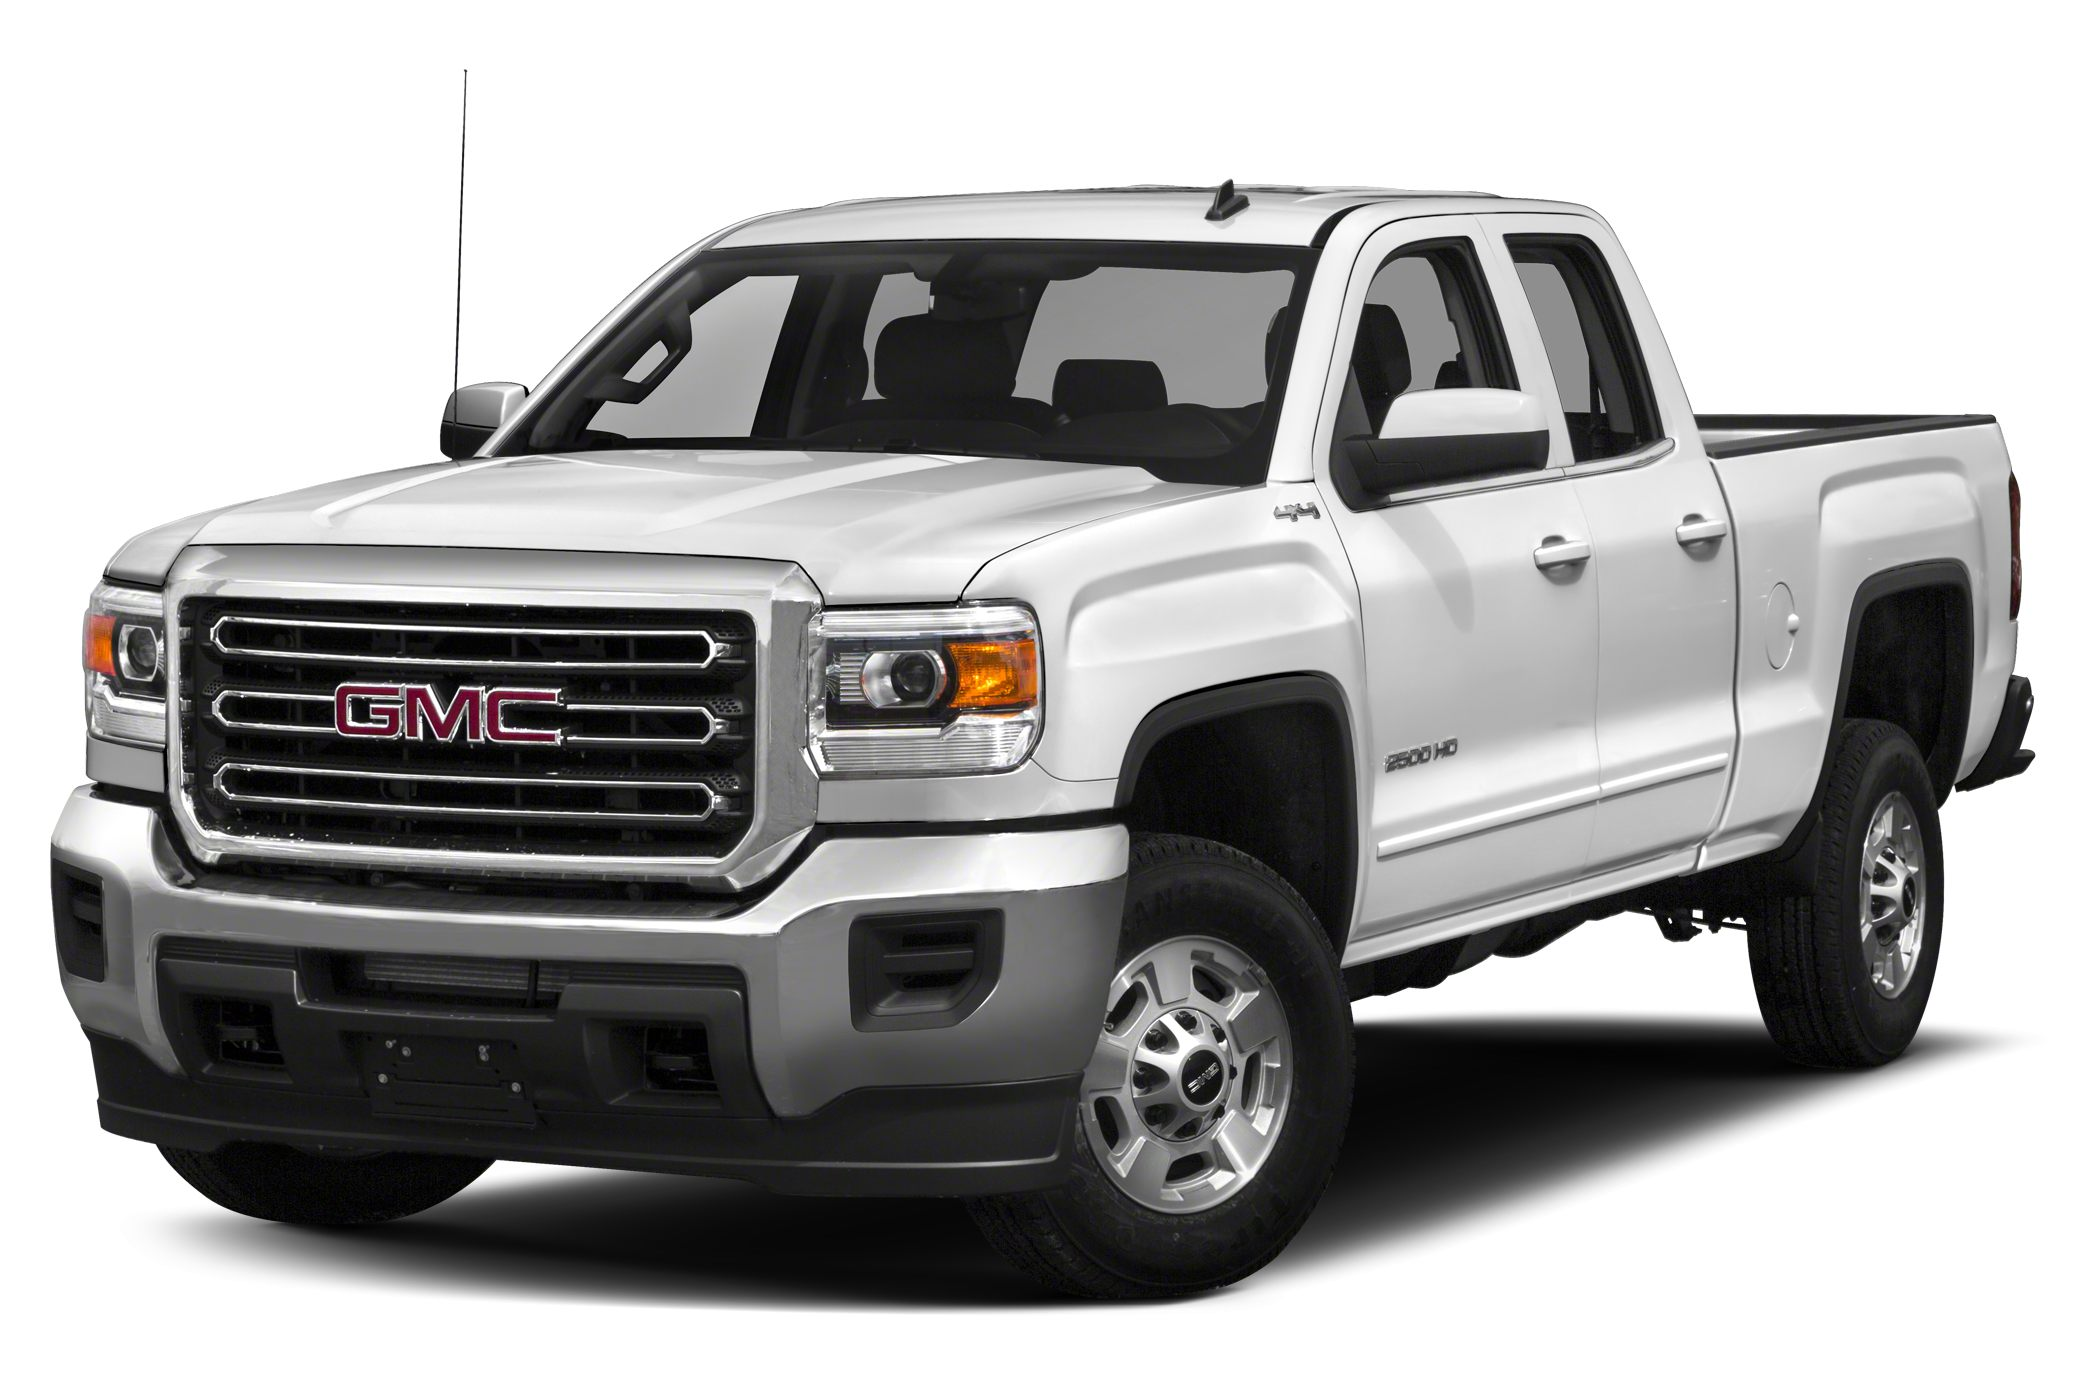 2015 GMC Sierra 3500 SLT Crew Cab Pickup for sale in Comanche for $64,470 with 0 miles